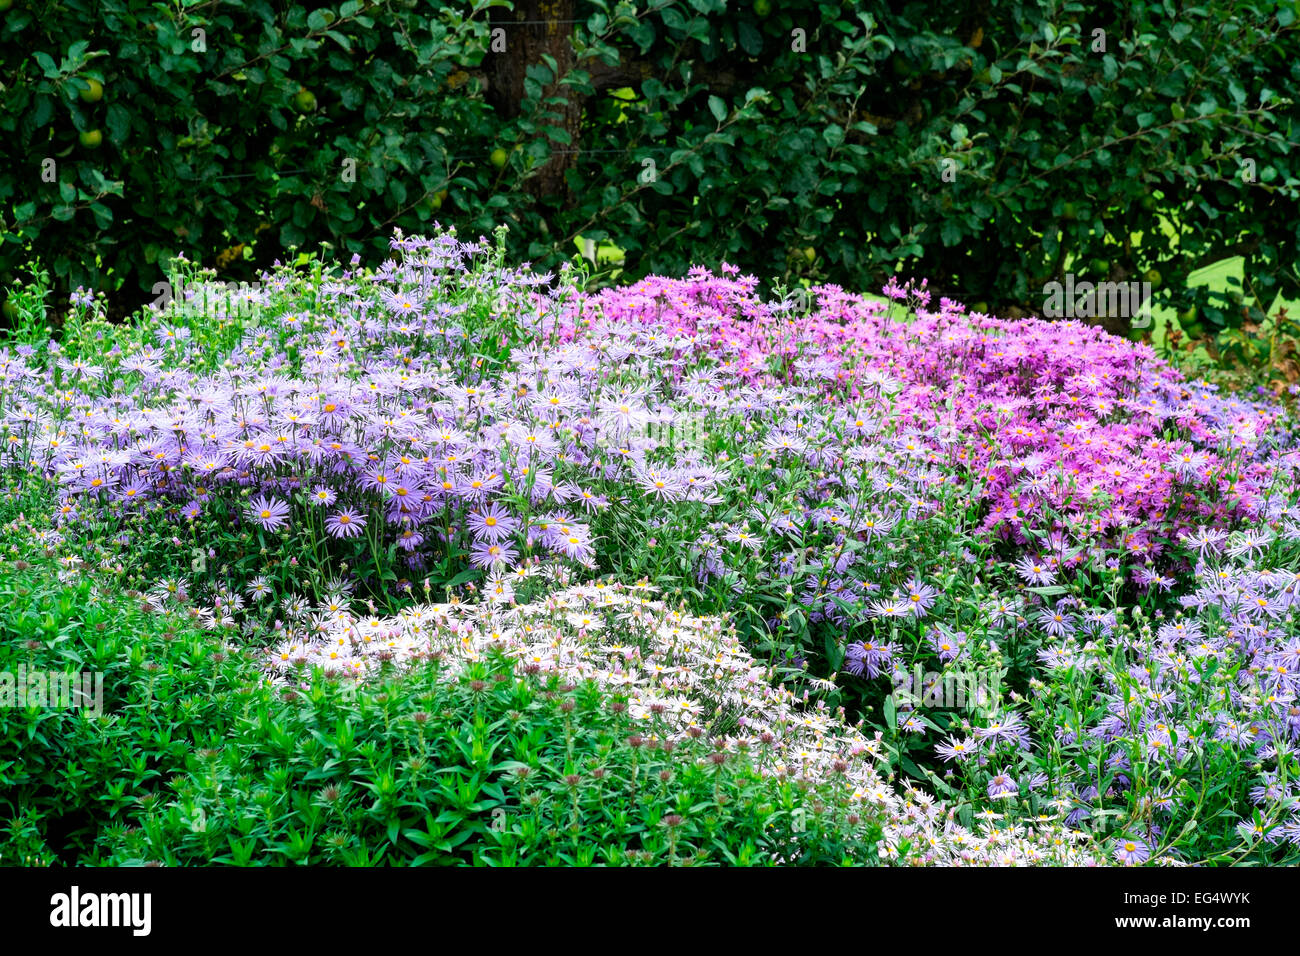 Flower bed with white pink and purple asters stock photo 78784151 flower bed with white pink and purple asters mightylinksfo